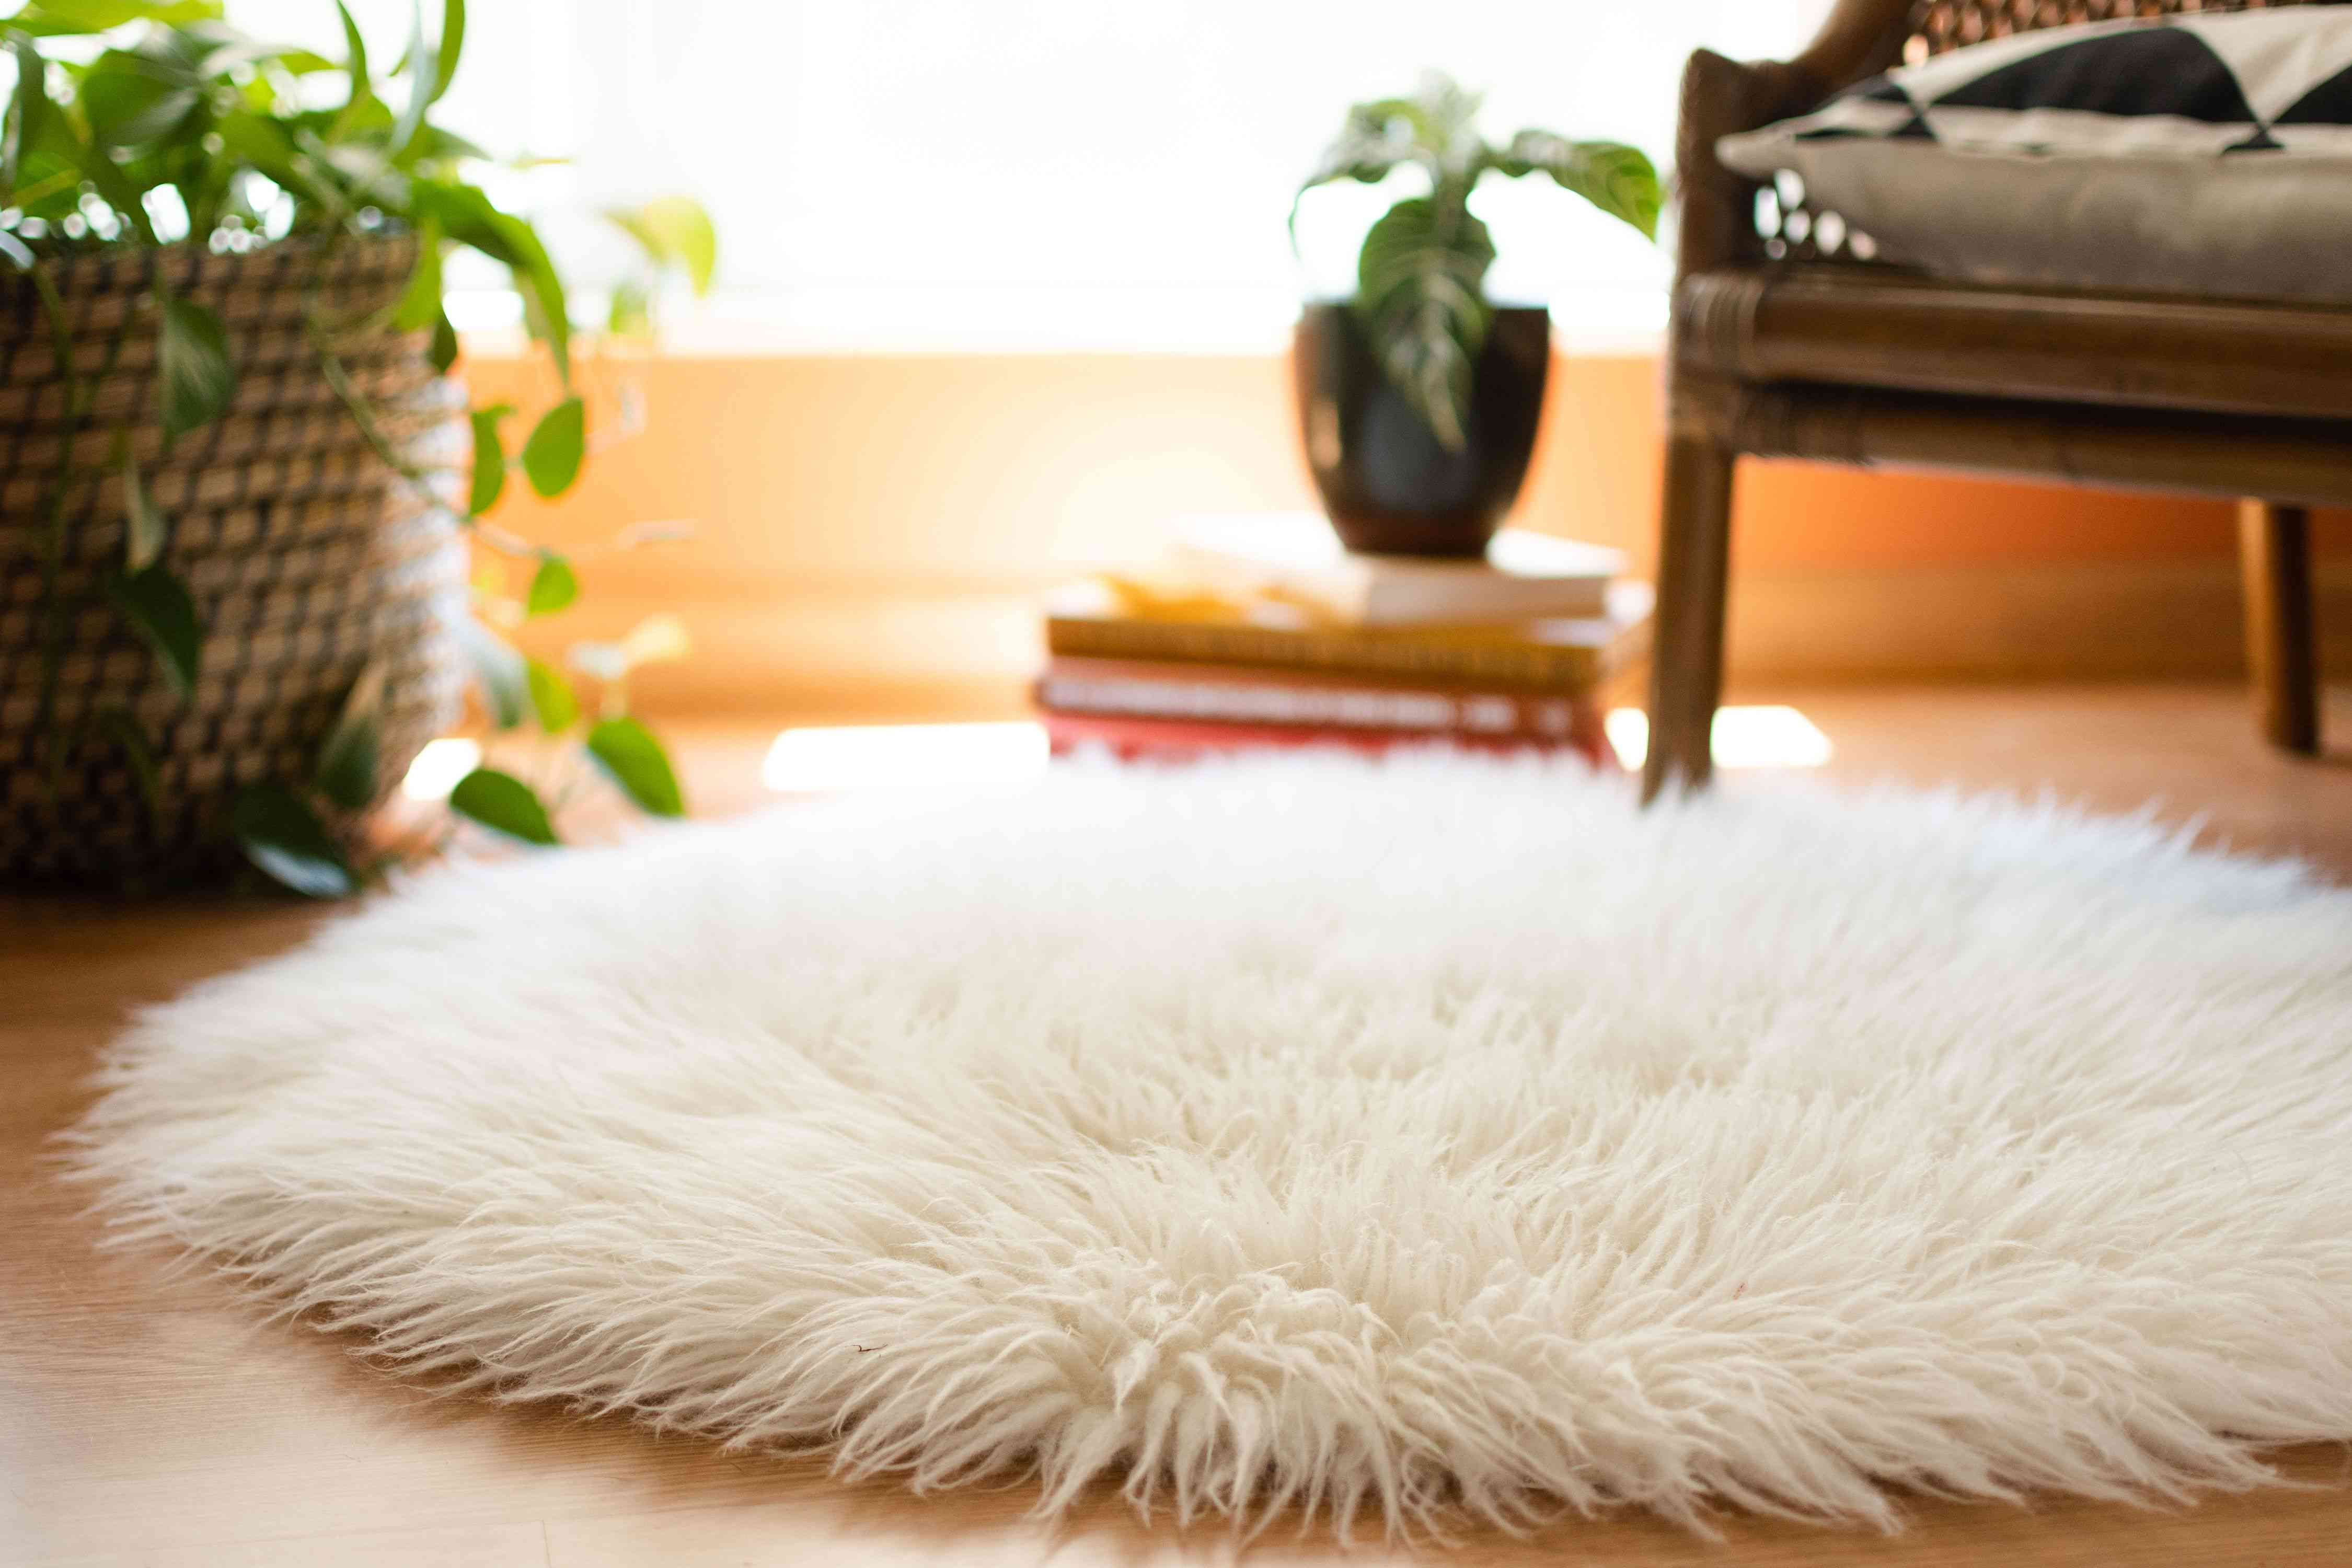 White shag rug in front of houseplants, stacked books and chair corner